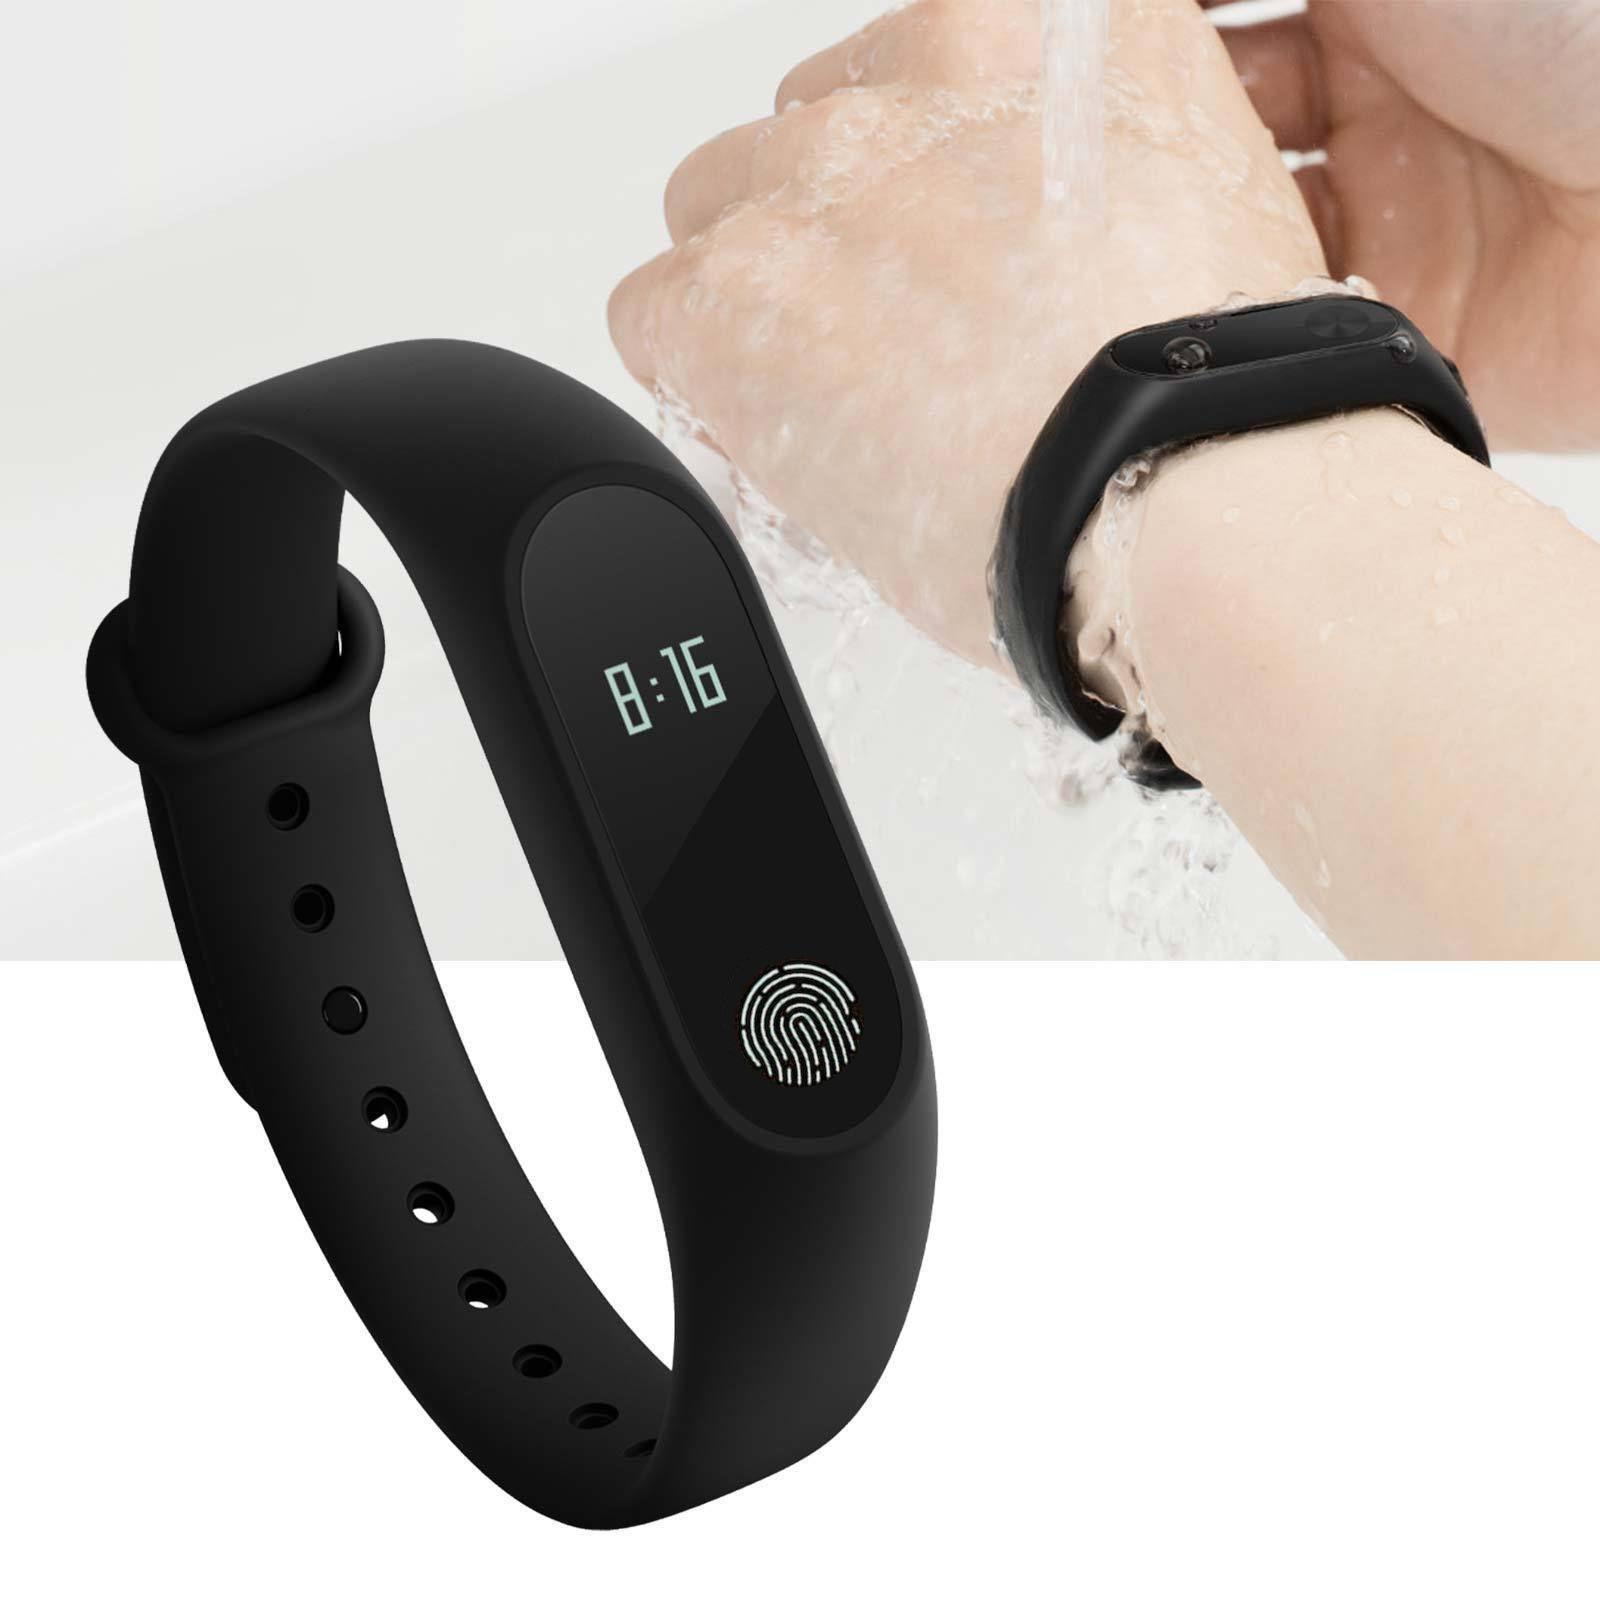 pedometer pressure band watches wrist pp blood intelligent fitness tracker bracelet smart rate wristband watch heart monitor